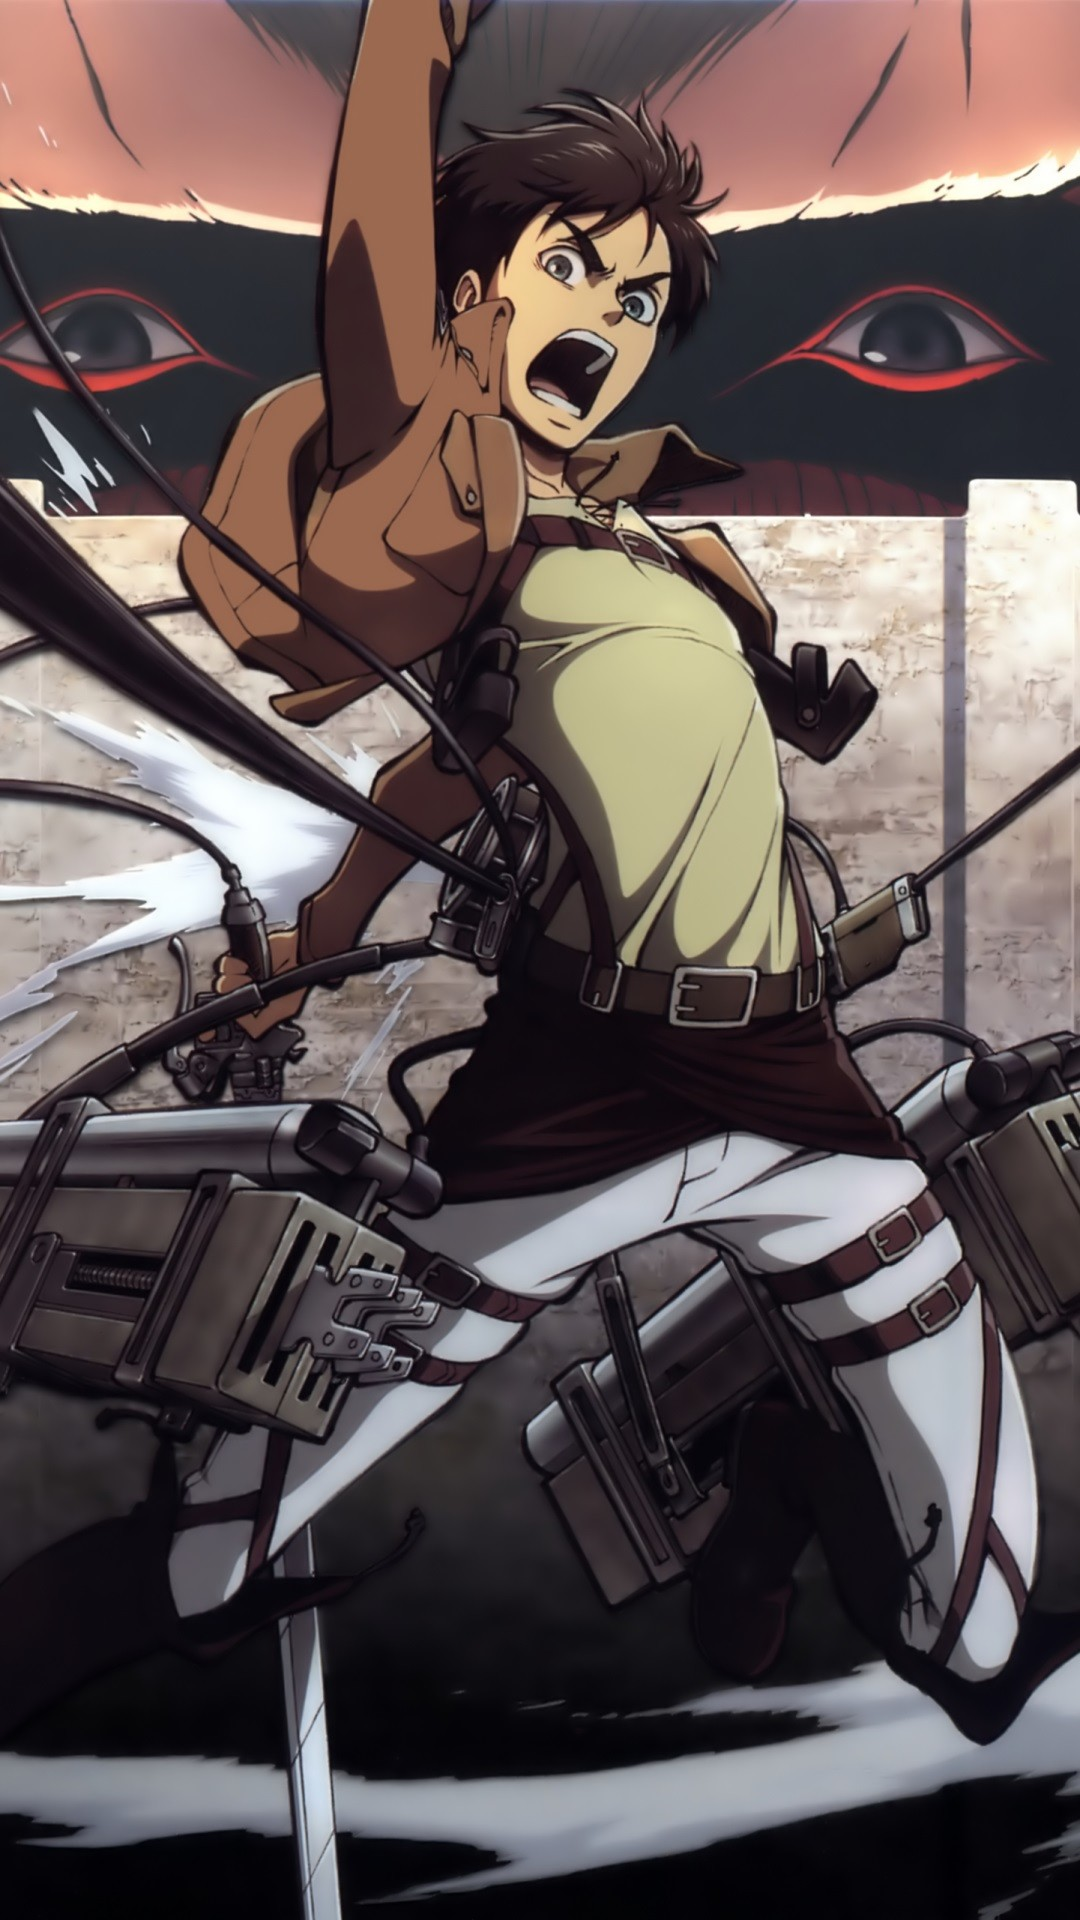 1080x1920 Attack On Titan Iphone Wallpaper Eren Shingeki no kyojin.eren jaeger